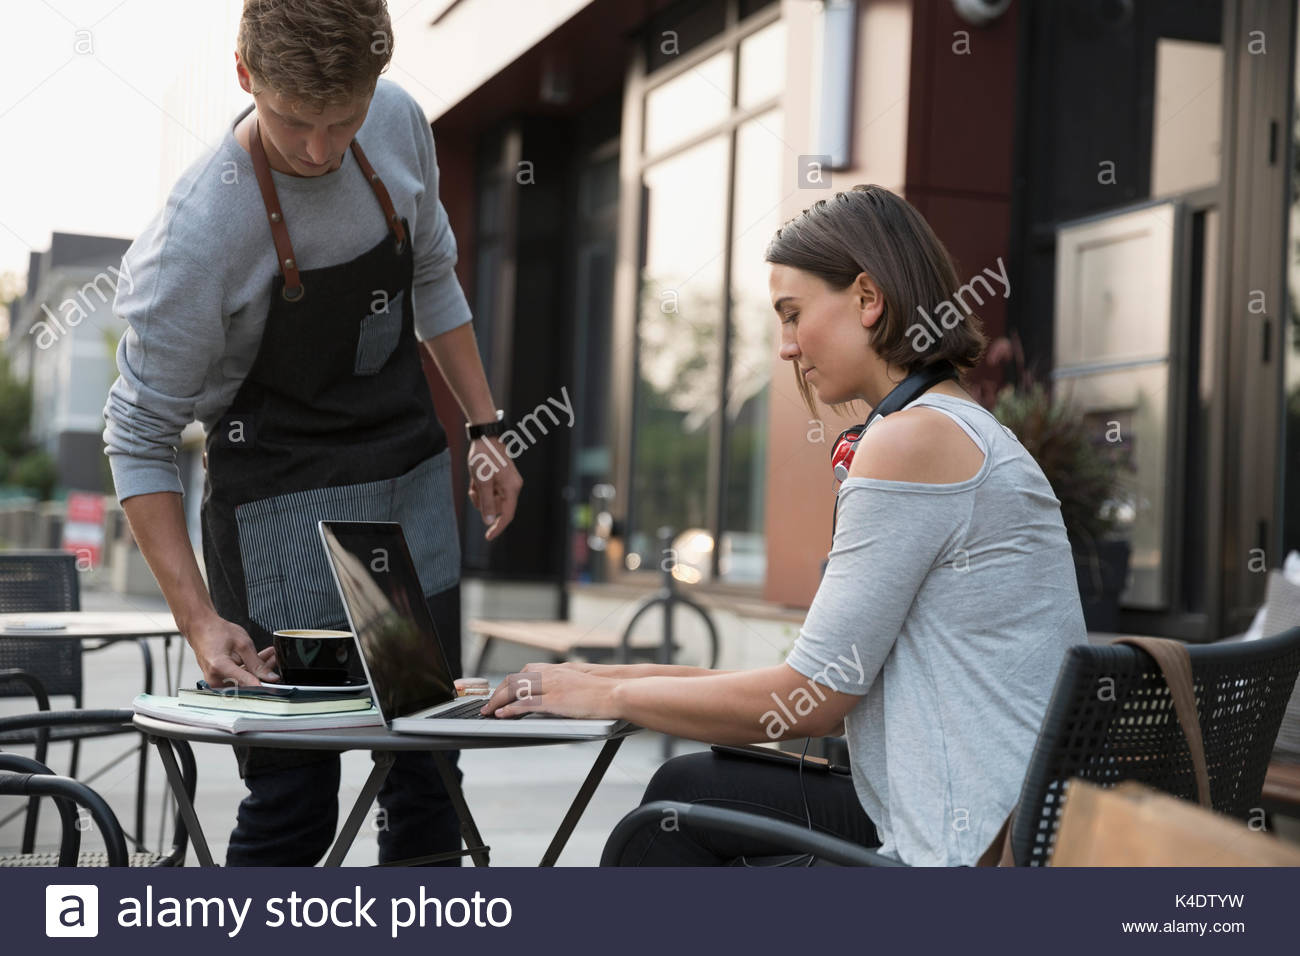 Waiter serving coffee to woman using laptop at sidewalk cafe - Stock Image